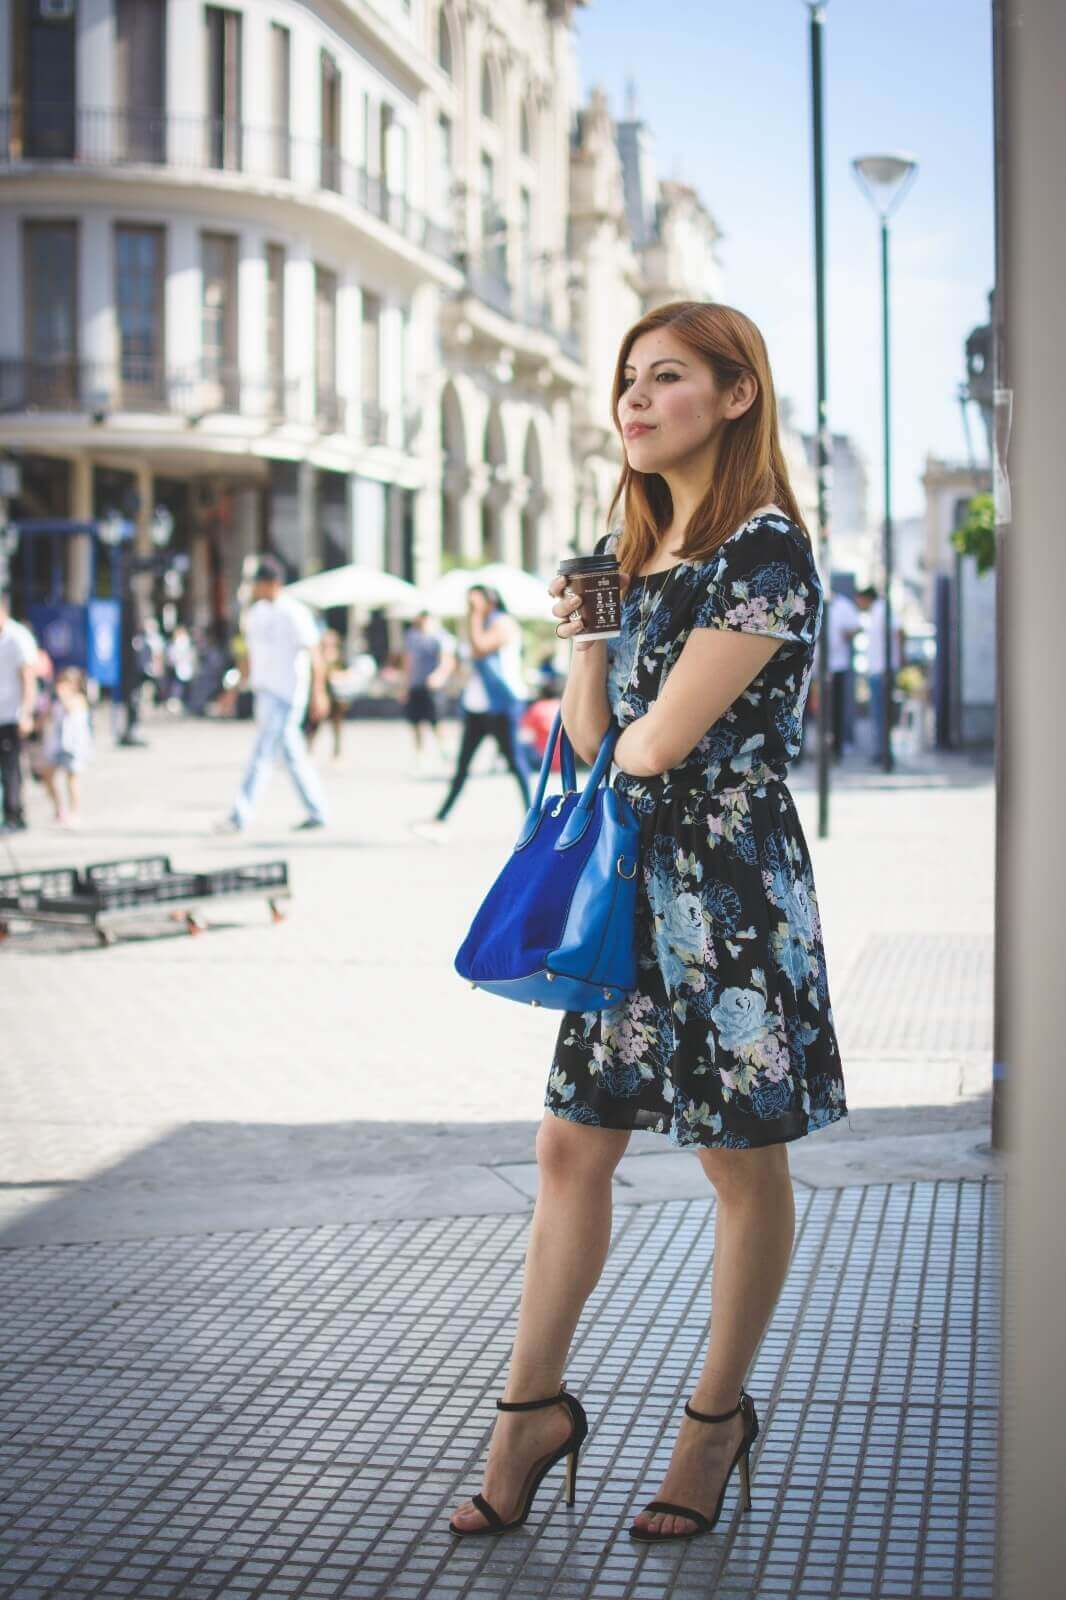 gamiss-black-strappy-sandals-blue-floral-dress-rosegal-cobalt-blue-tote-bag-deborah-ferrero-style-by-deb09